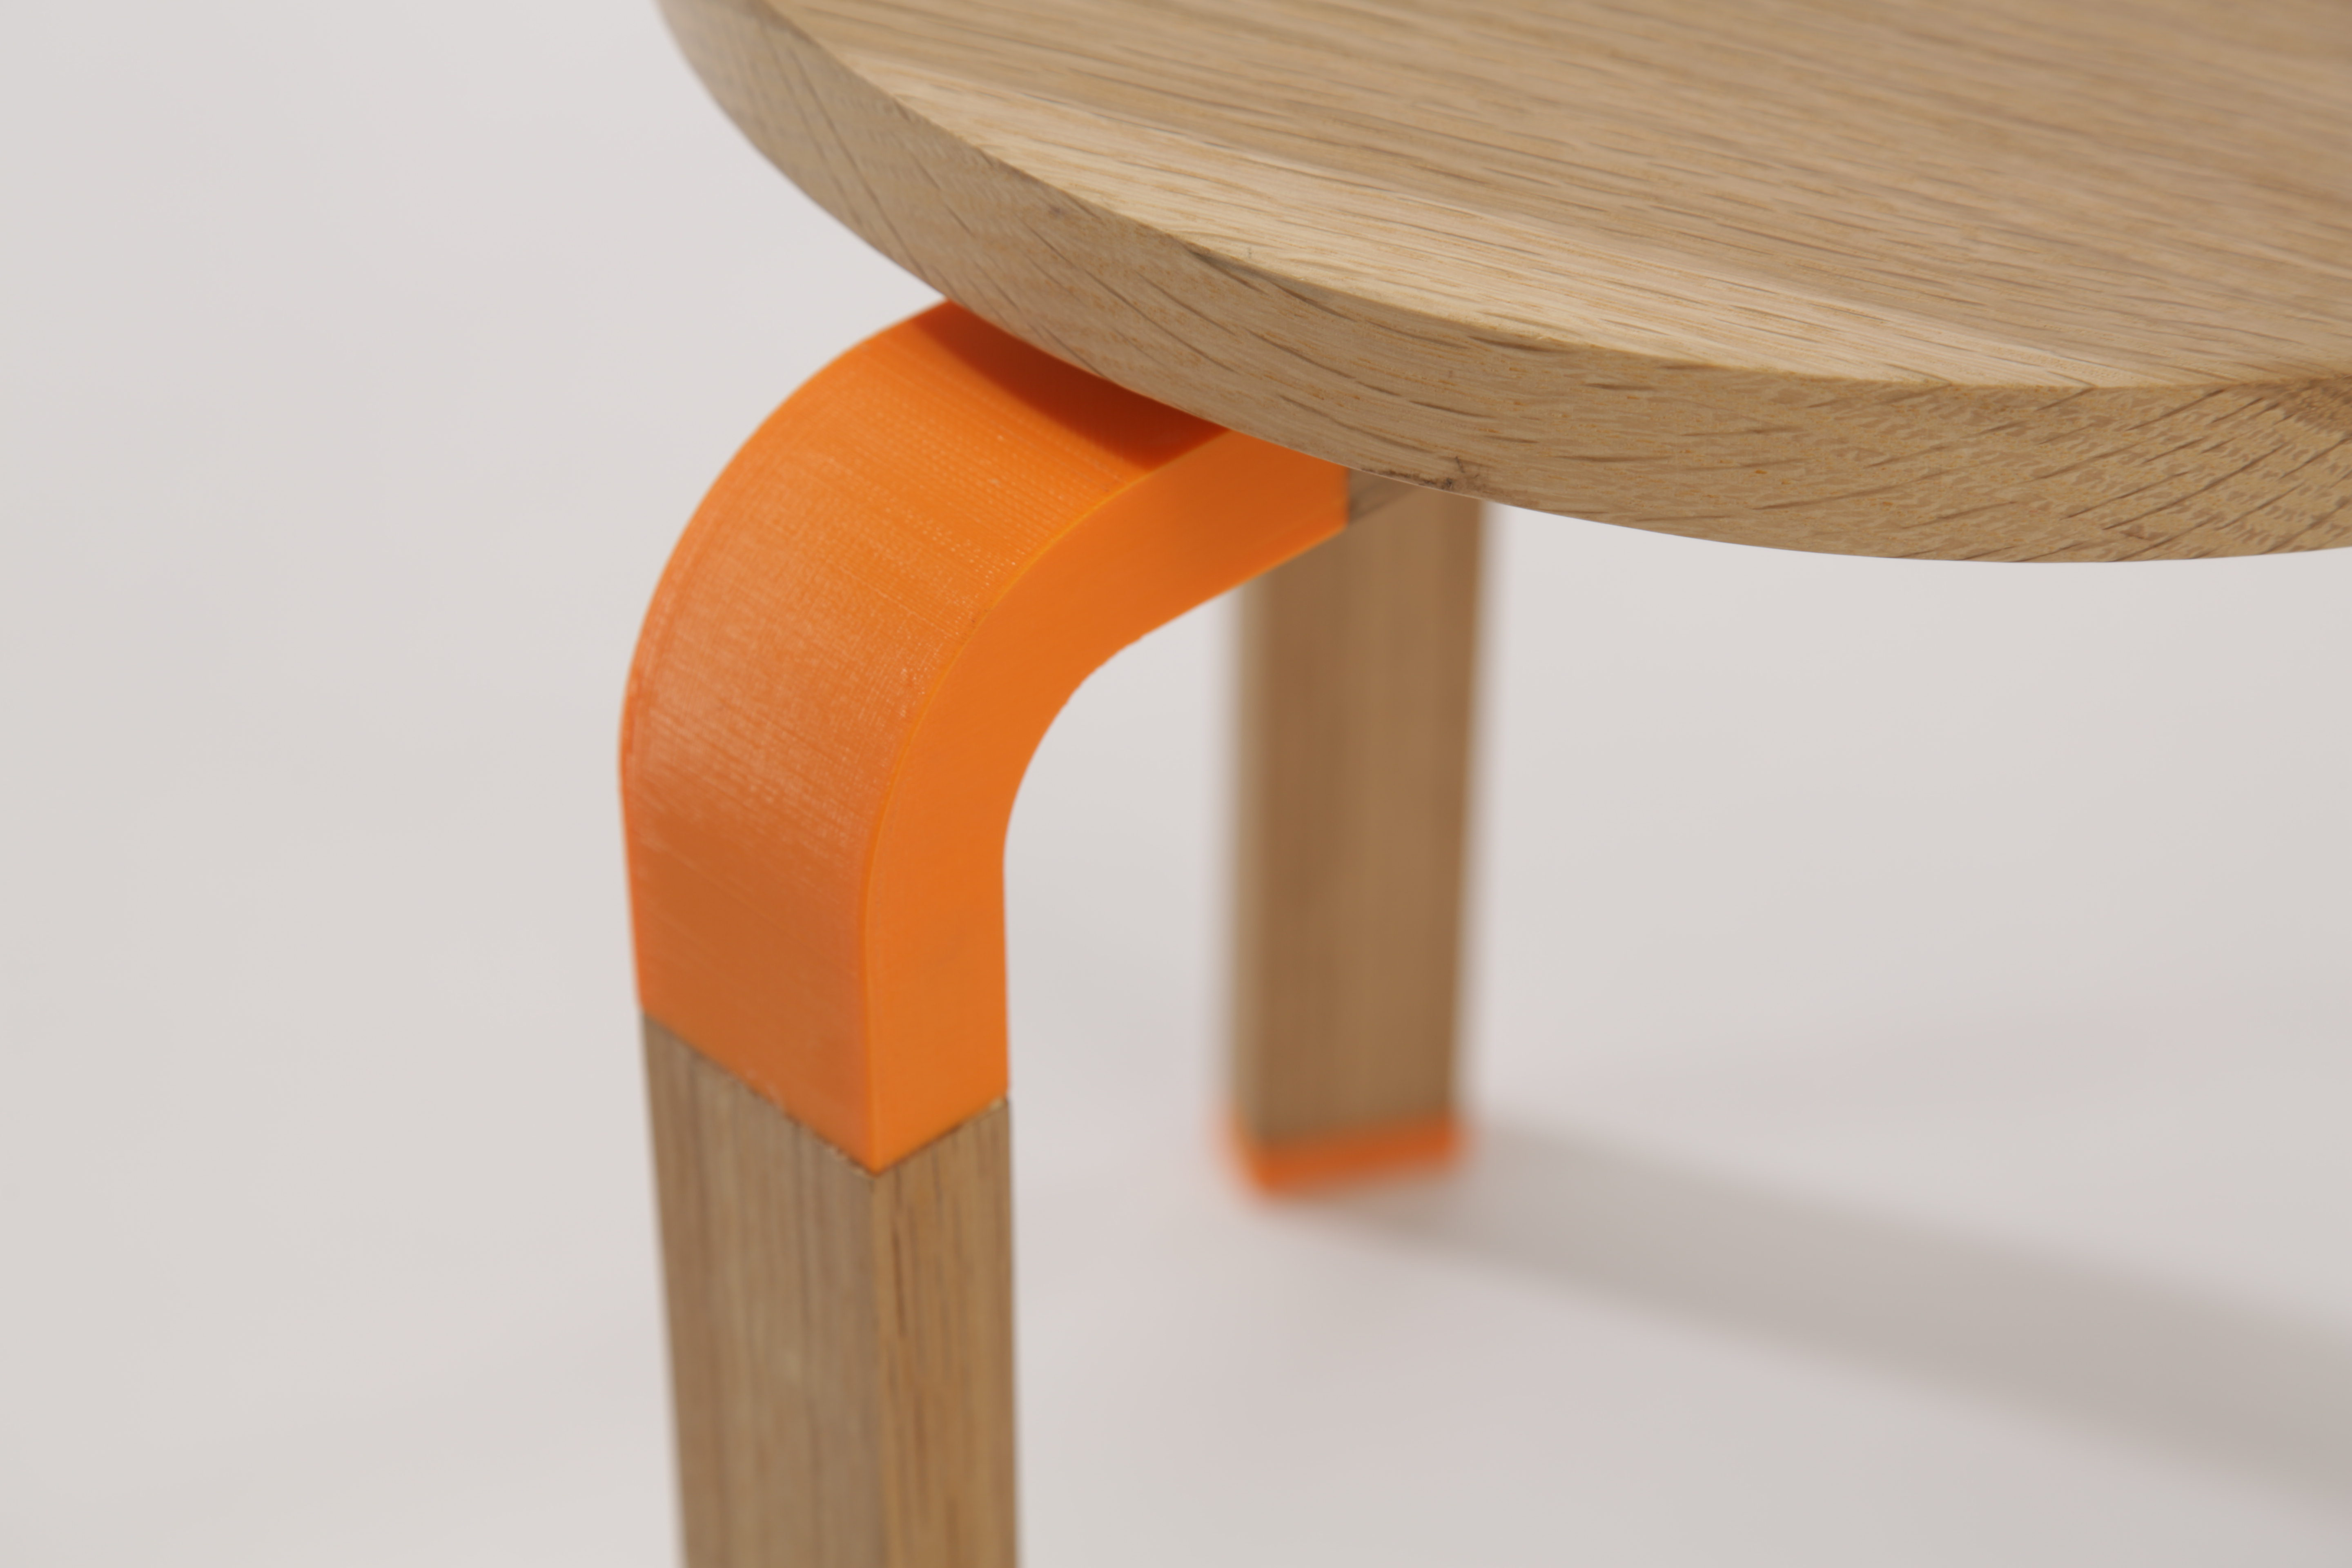 J60 side-table